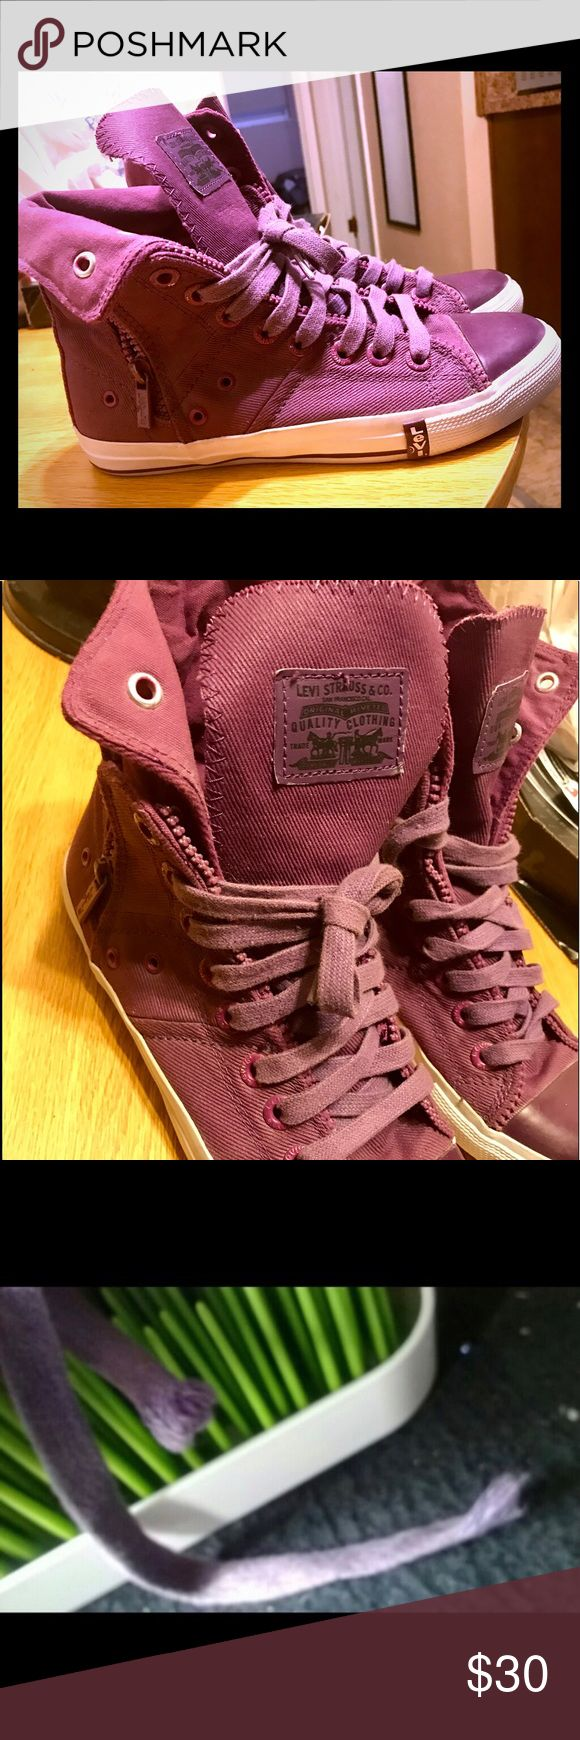 💜Purple Hi-Top Levi's Sneakers💜 Purple/Plum colored Hi-Top Levi's sneakers. Super stylish, zips on the sides. Women's size 7.5. Willing to give discounts for bundles. Always ships fast! Will clean well before shipping. Levi's Shoes Sneakers